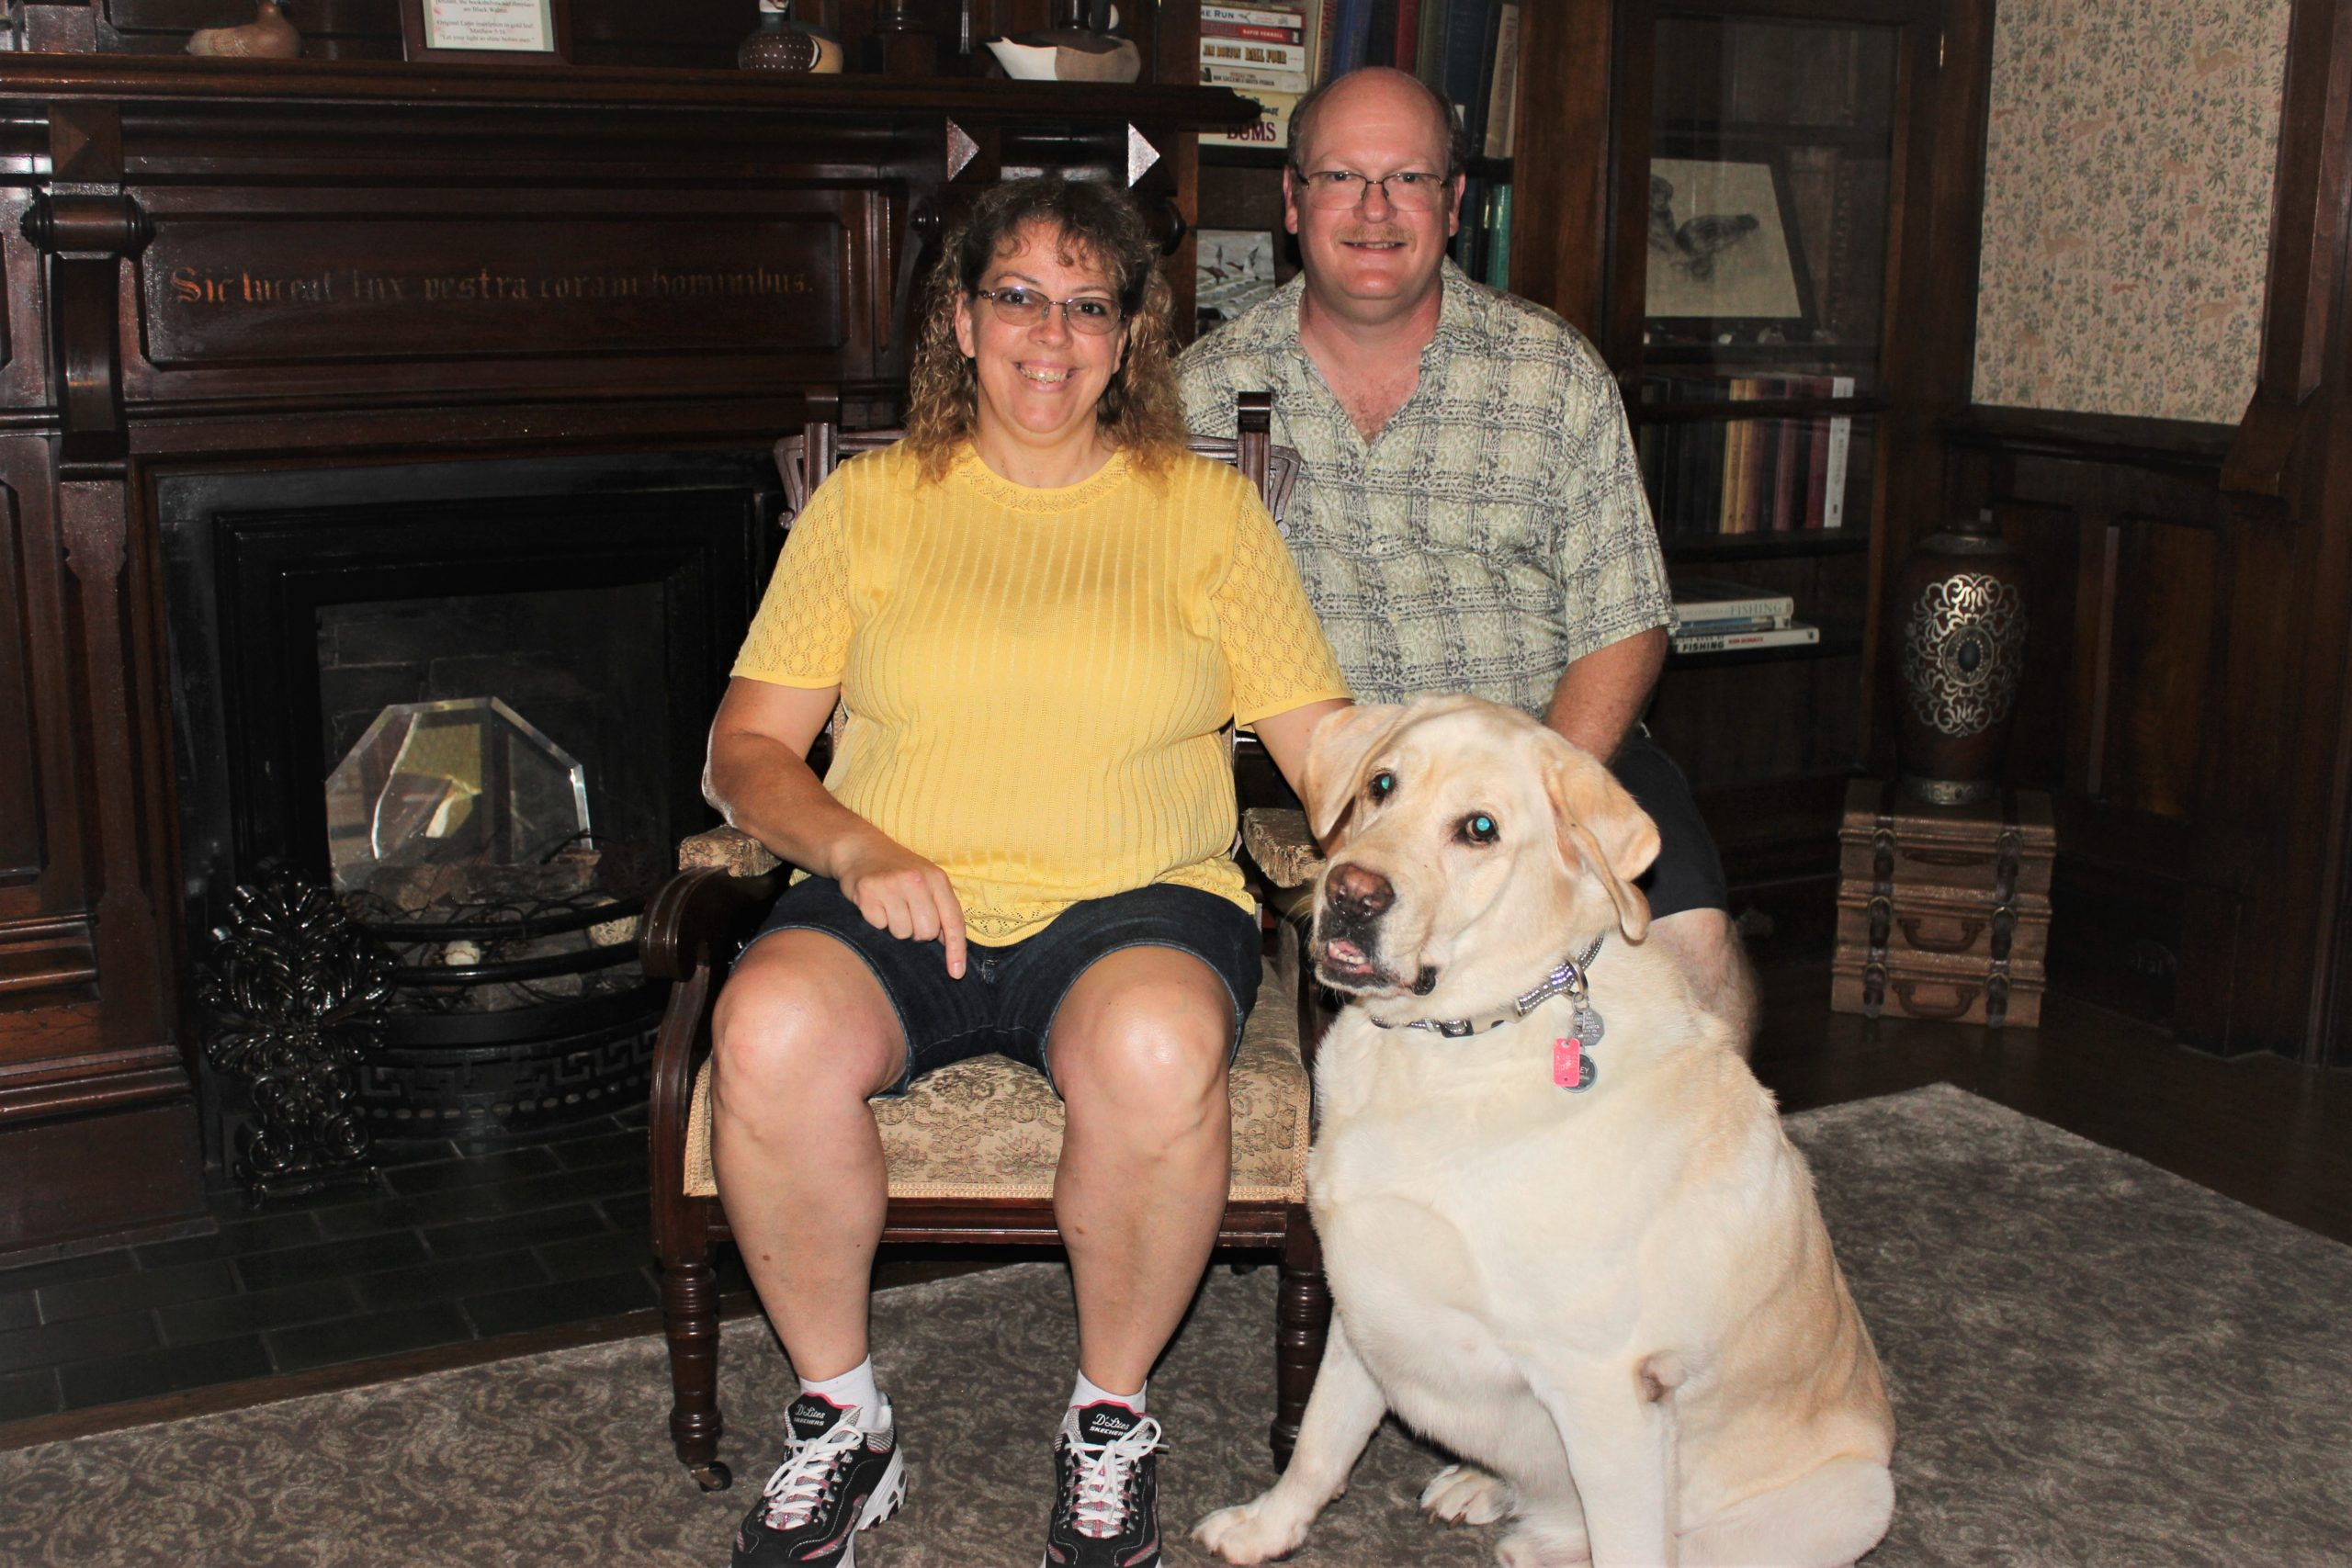 The Innkeepers, Steve and Lisa, with their dog Bailey in front of the Library Fireplce